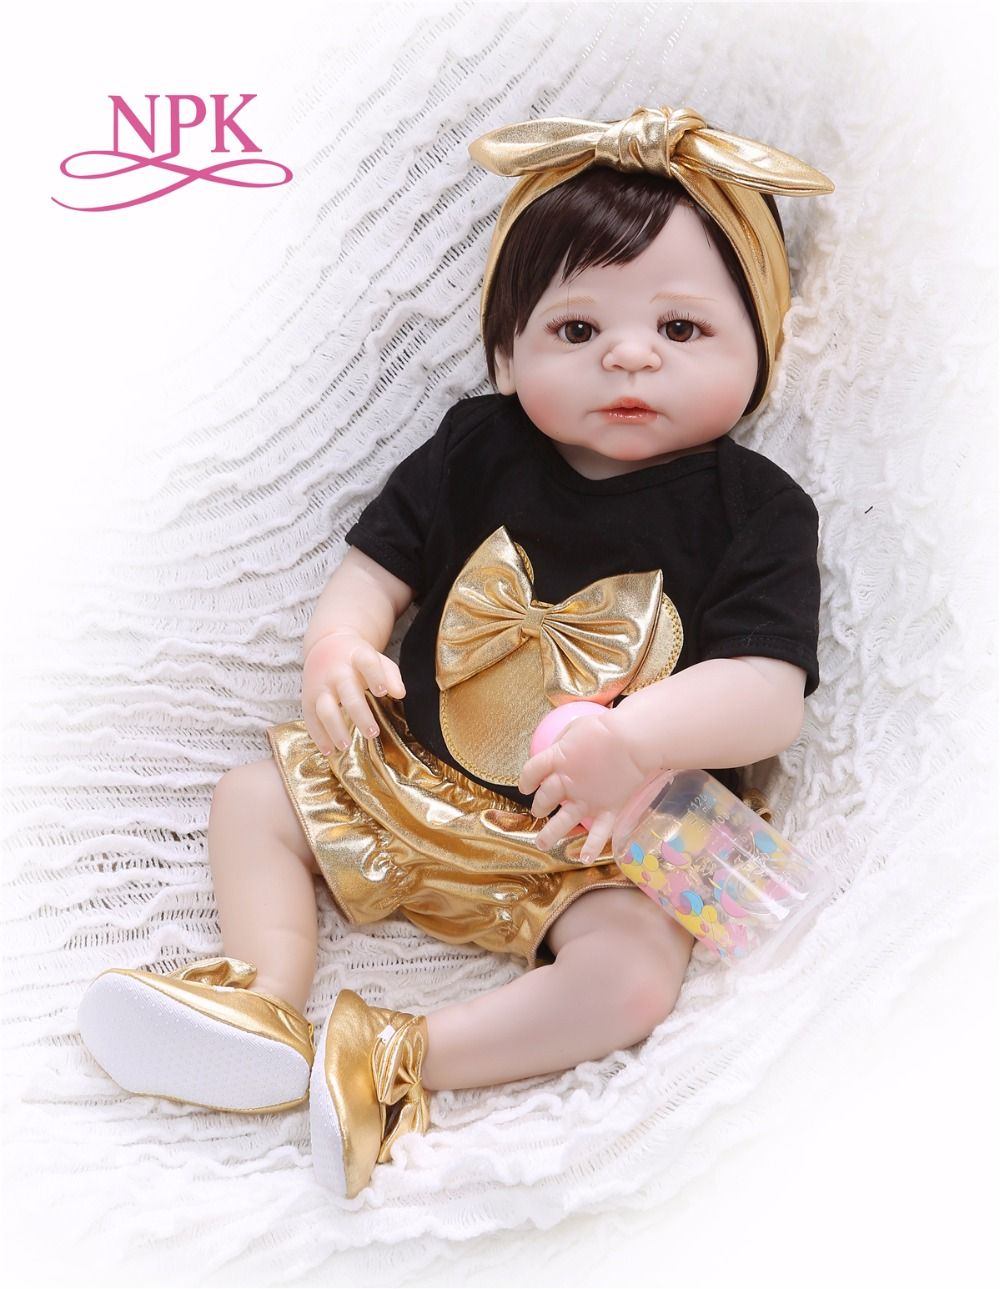 NPK New Arrival 55 cm Silicone Full Body Reborn Doll Real Life golden Princess Baby Doll For Xmas Gift Kid